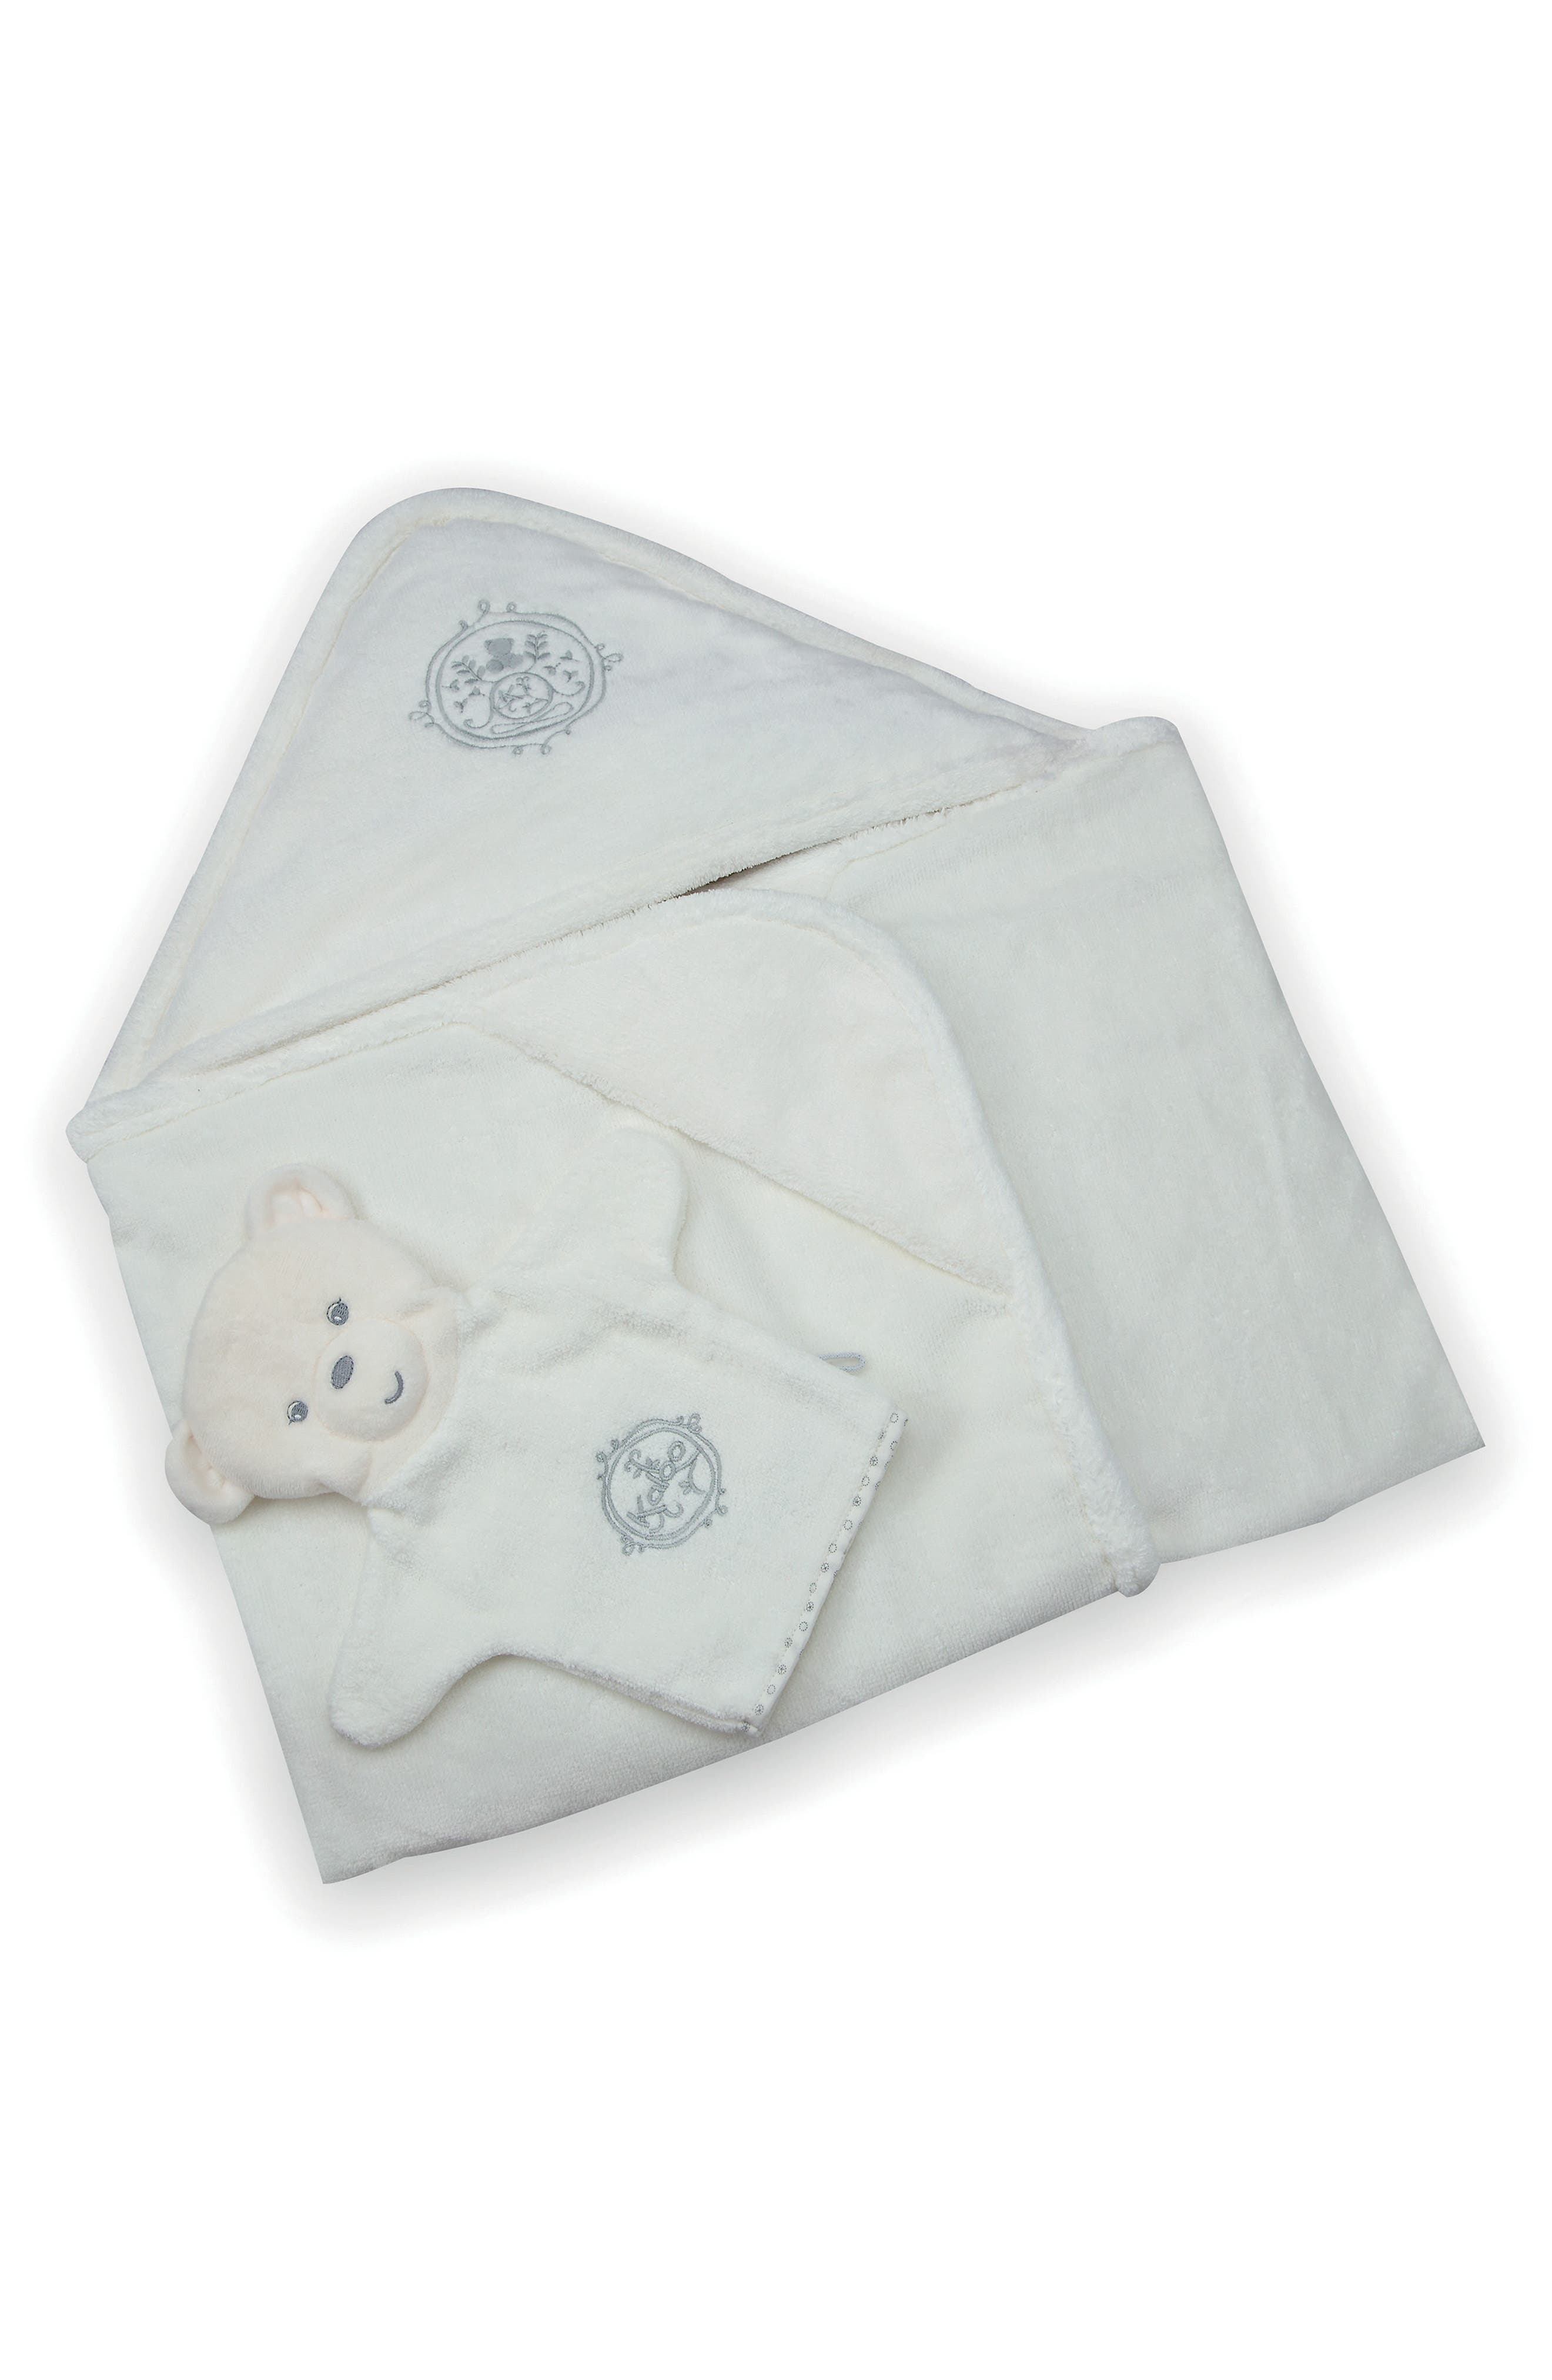 Bath Towel & Bear Puppet Wash Mitt,                             Main thumbnail 1, color,                             Blue